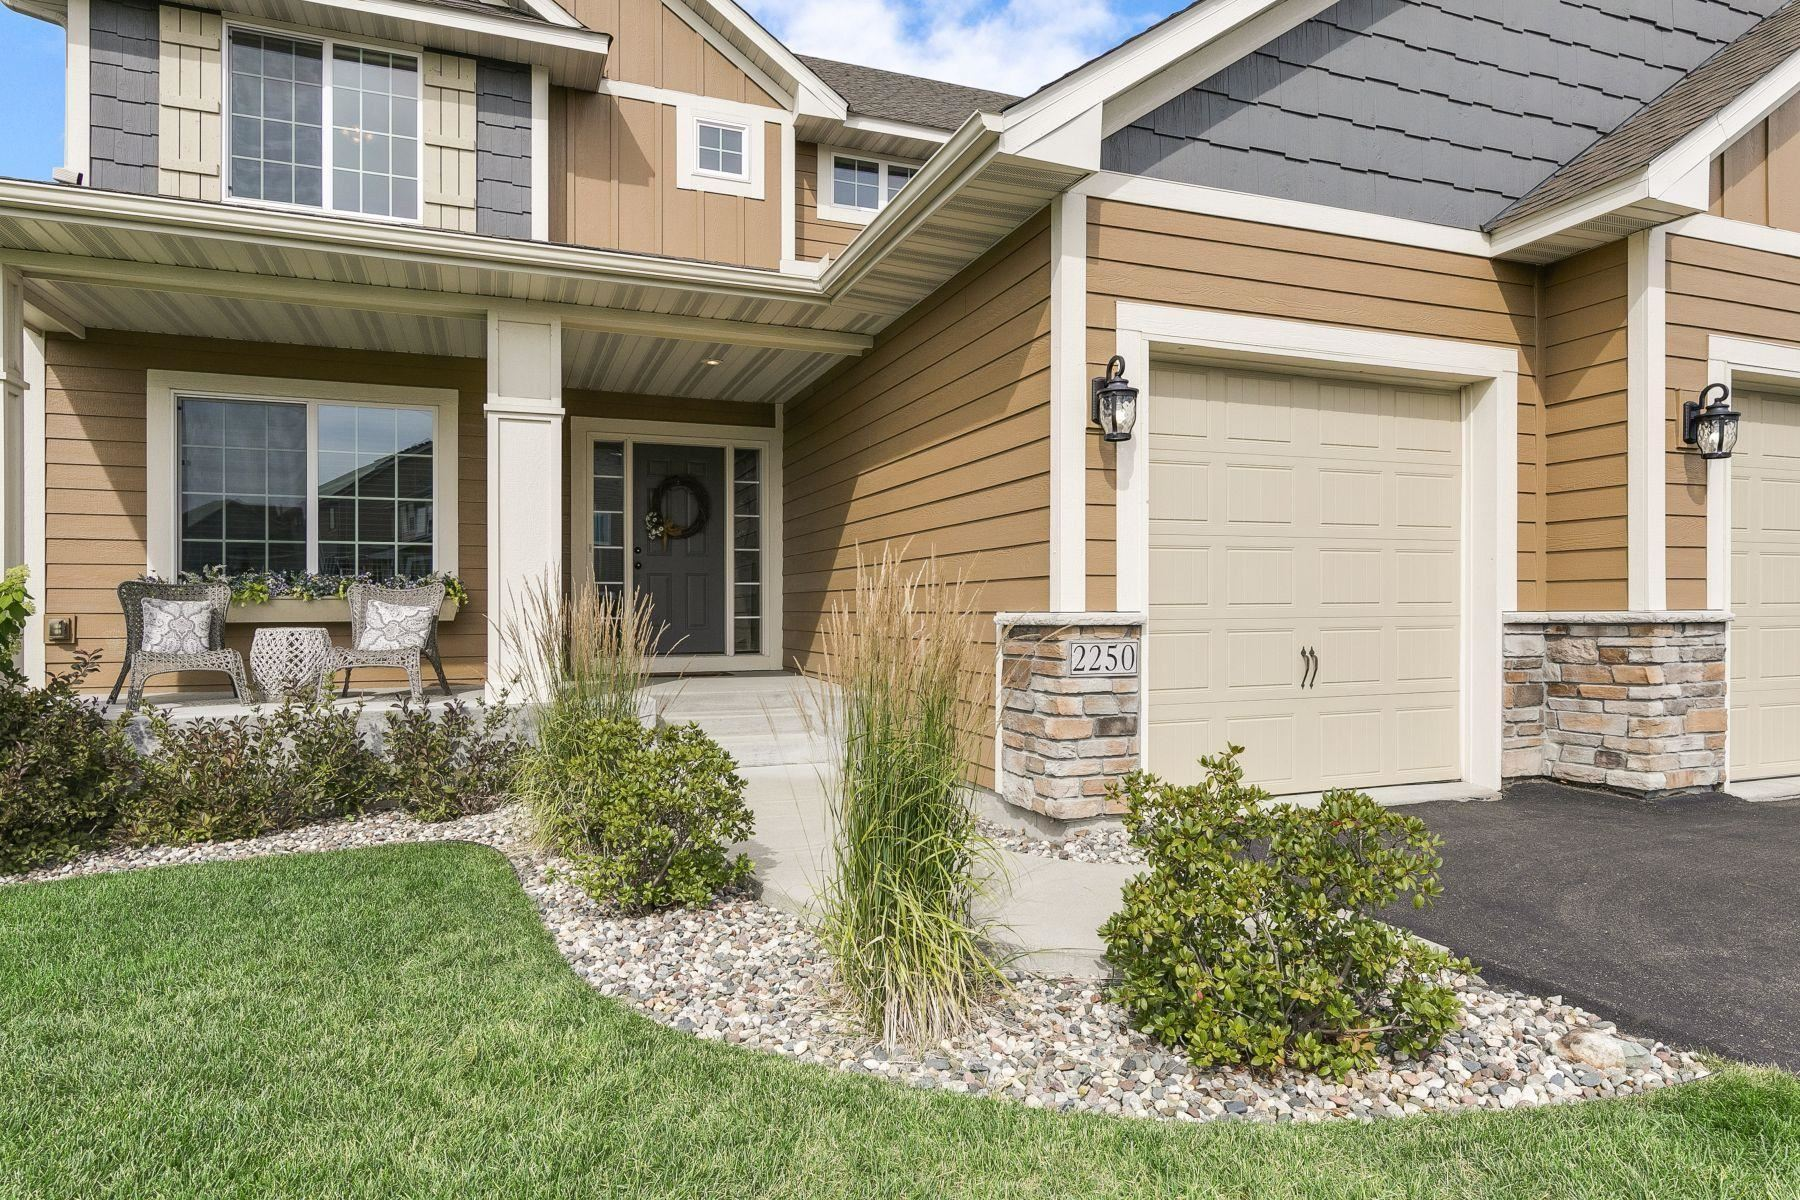 2250 Jennifer Lane, Shakopee, MN 55379 - MLS#: 5626615